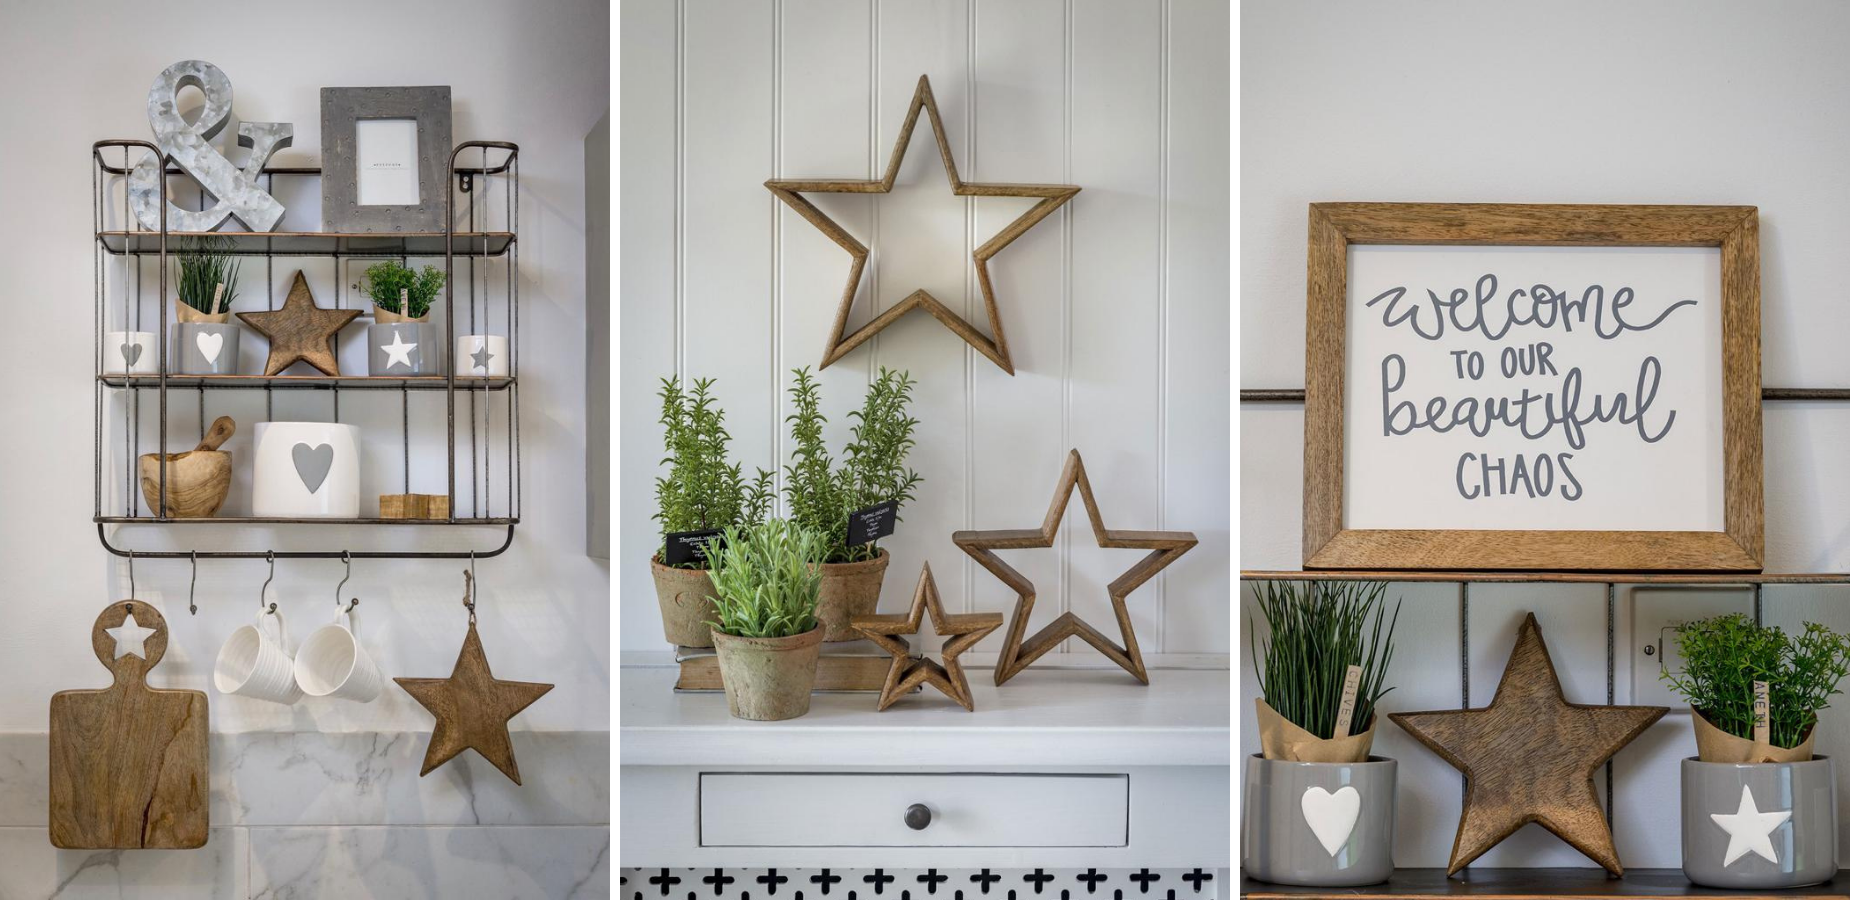 Modern rustic accessories from the home